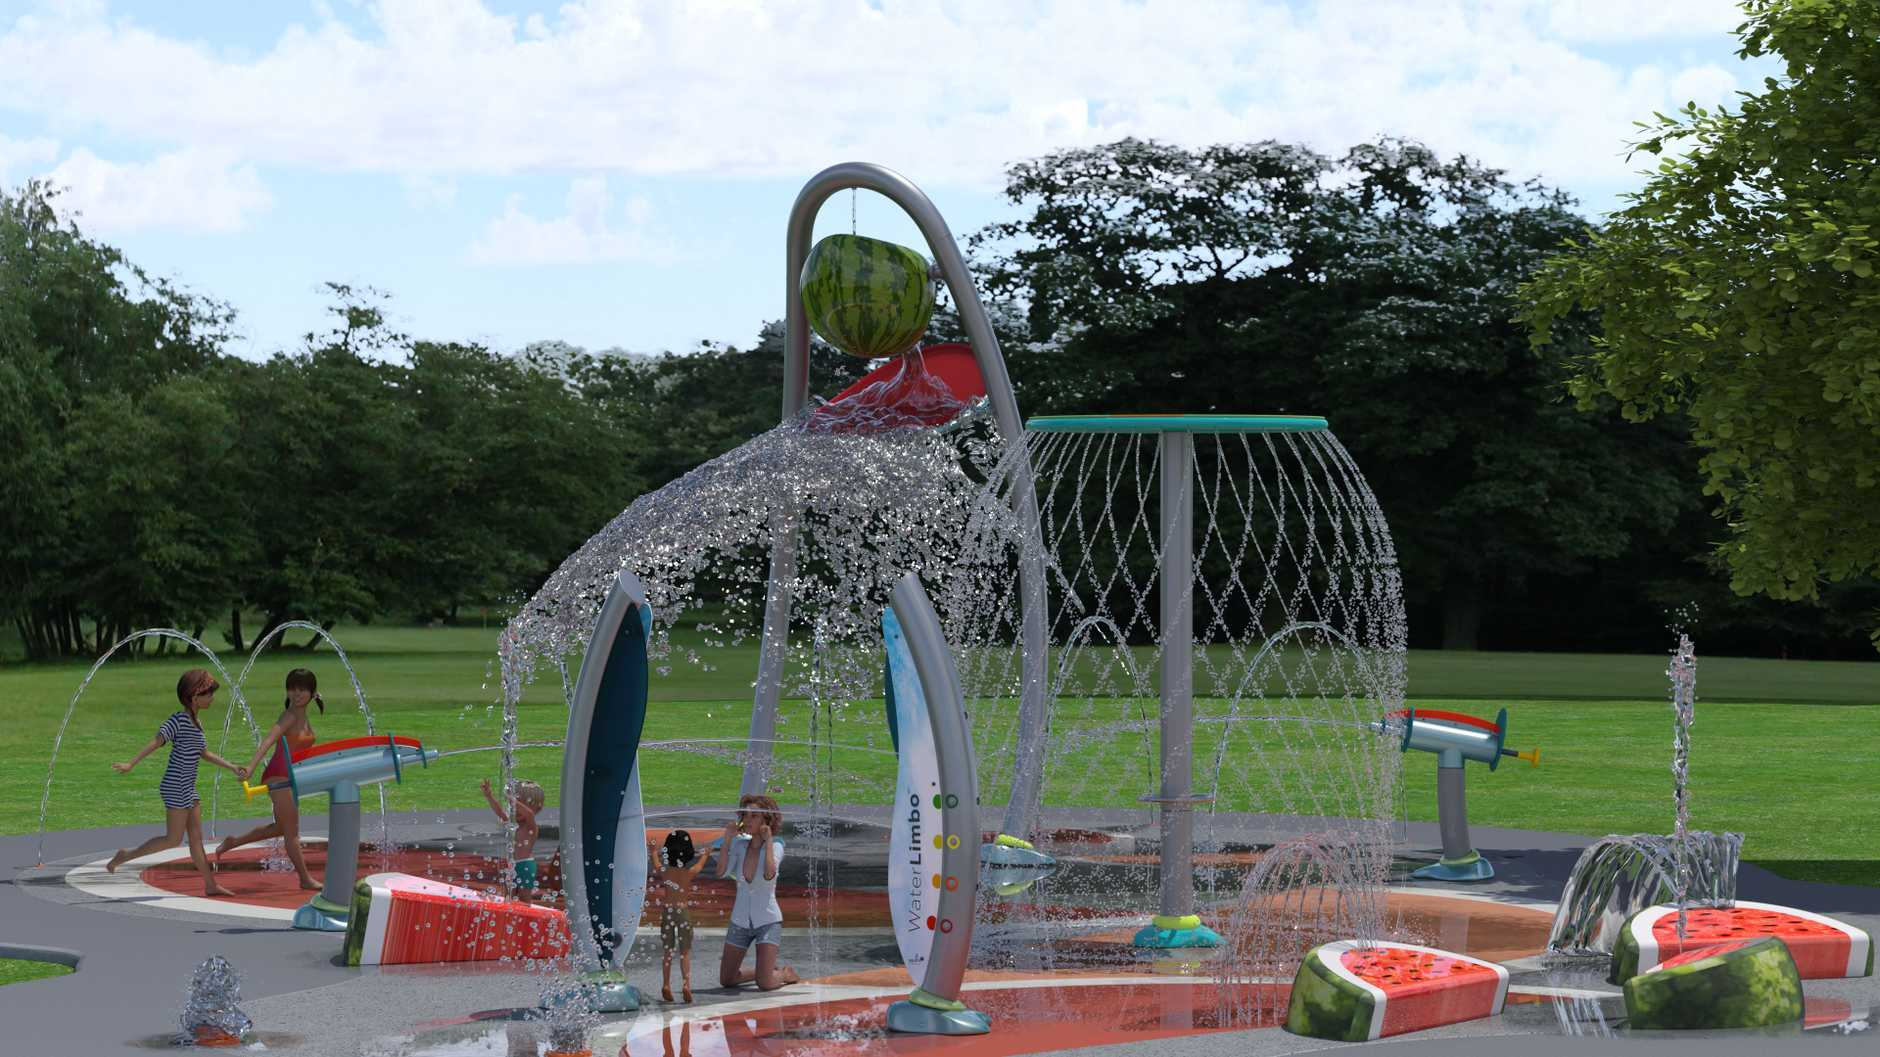 Artist's impression of the water play area to be featured in the Chinchilla Botanic Parklands due to open early 2019.